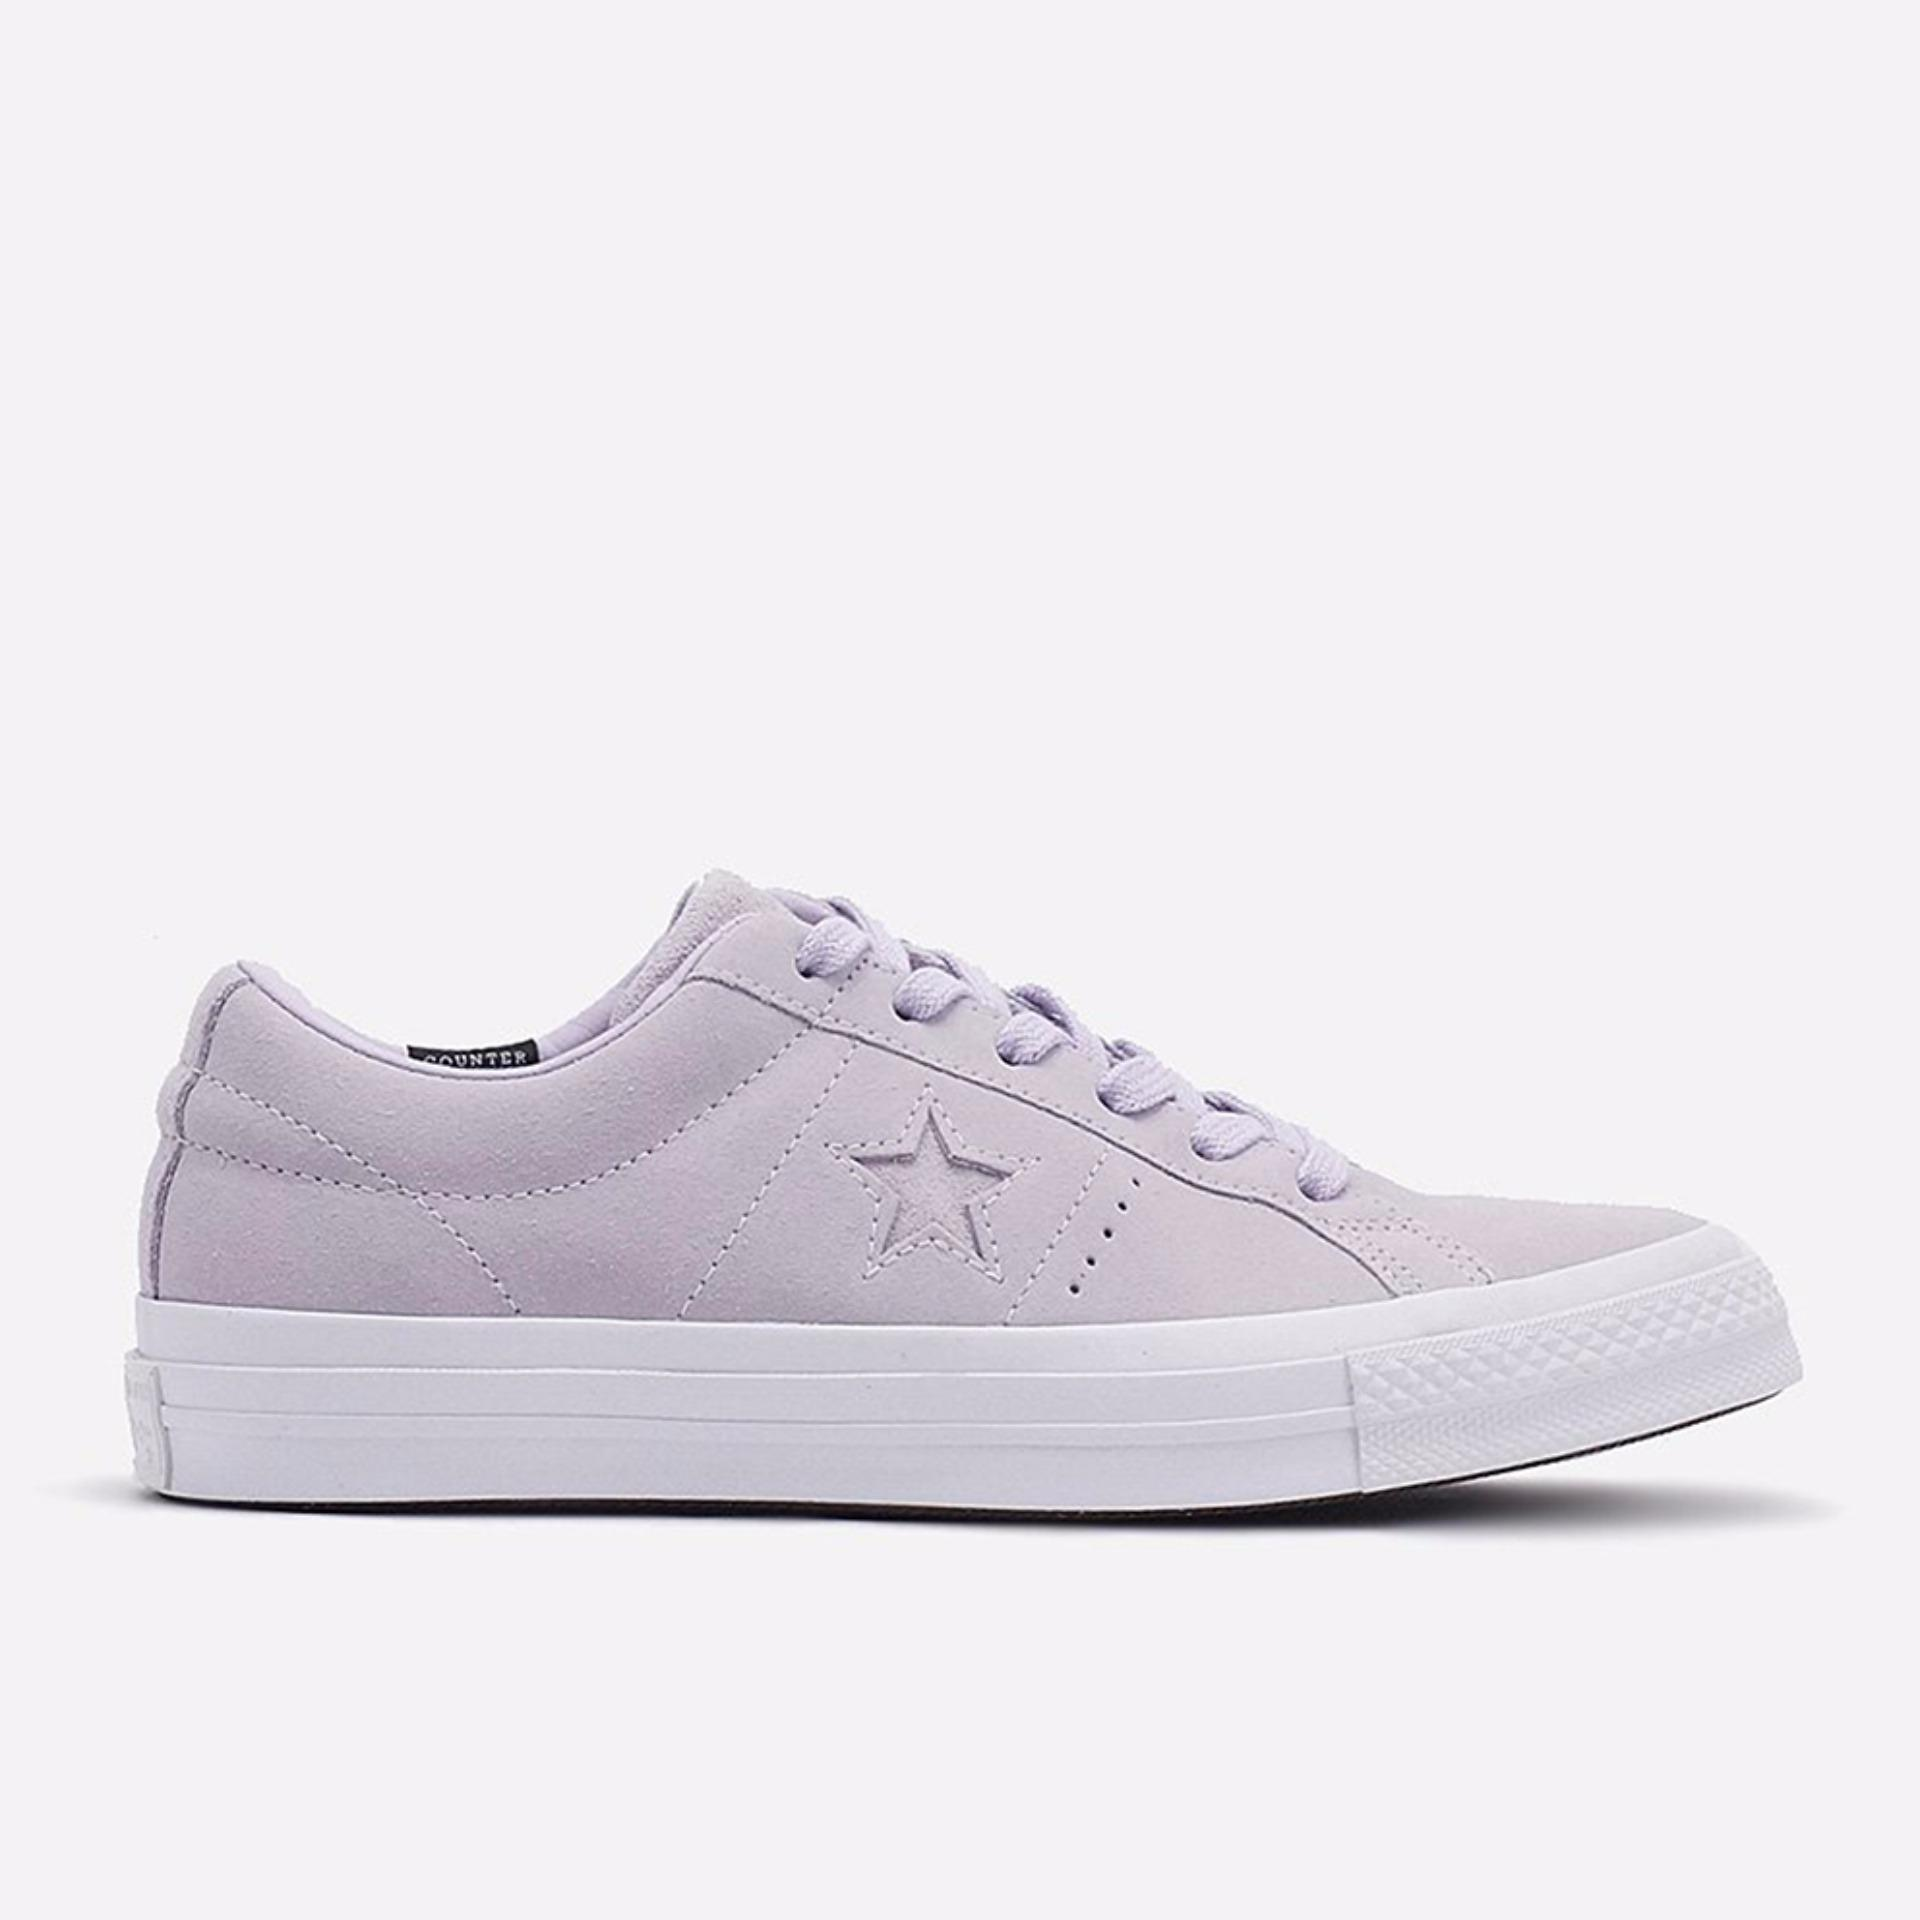 Promo Converse One Star Ox Plush Suede Women S Sneakers Shoes Barely Fuchsia Akhir Tahun